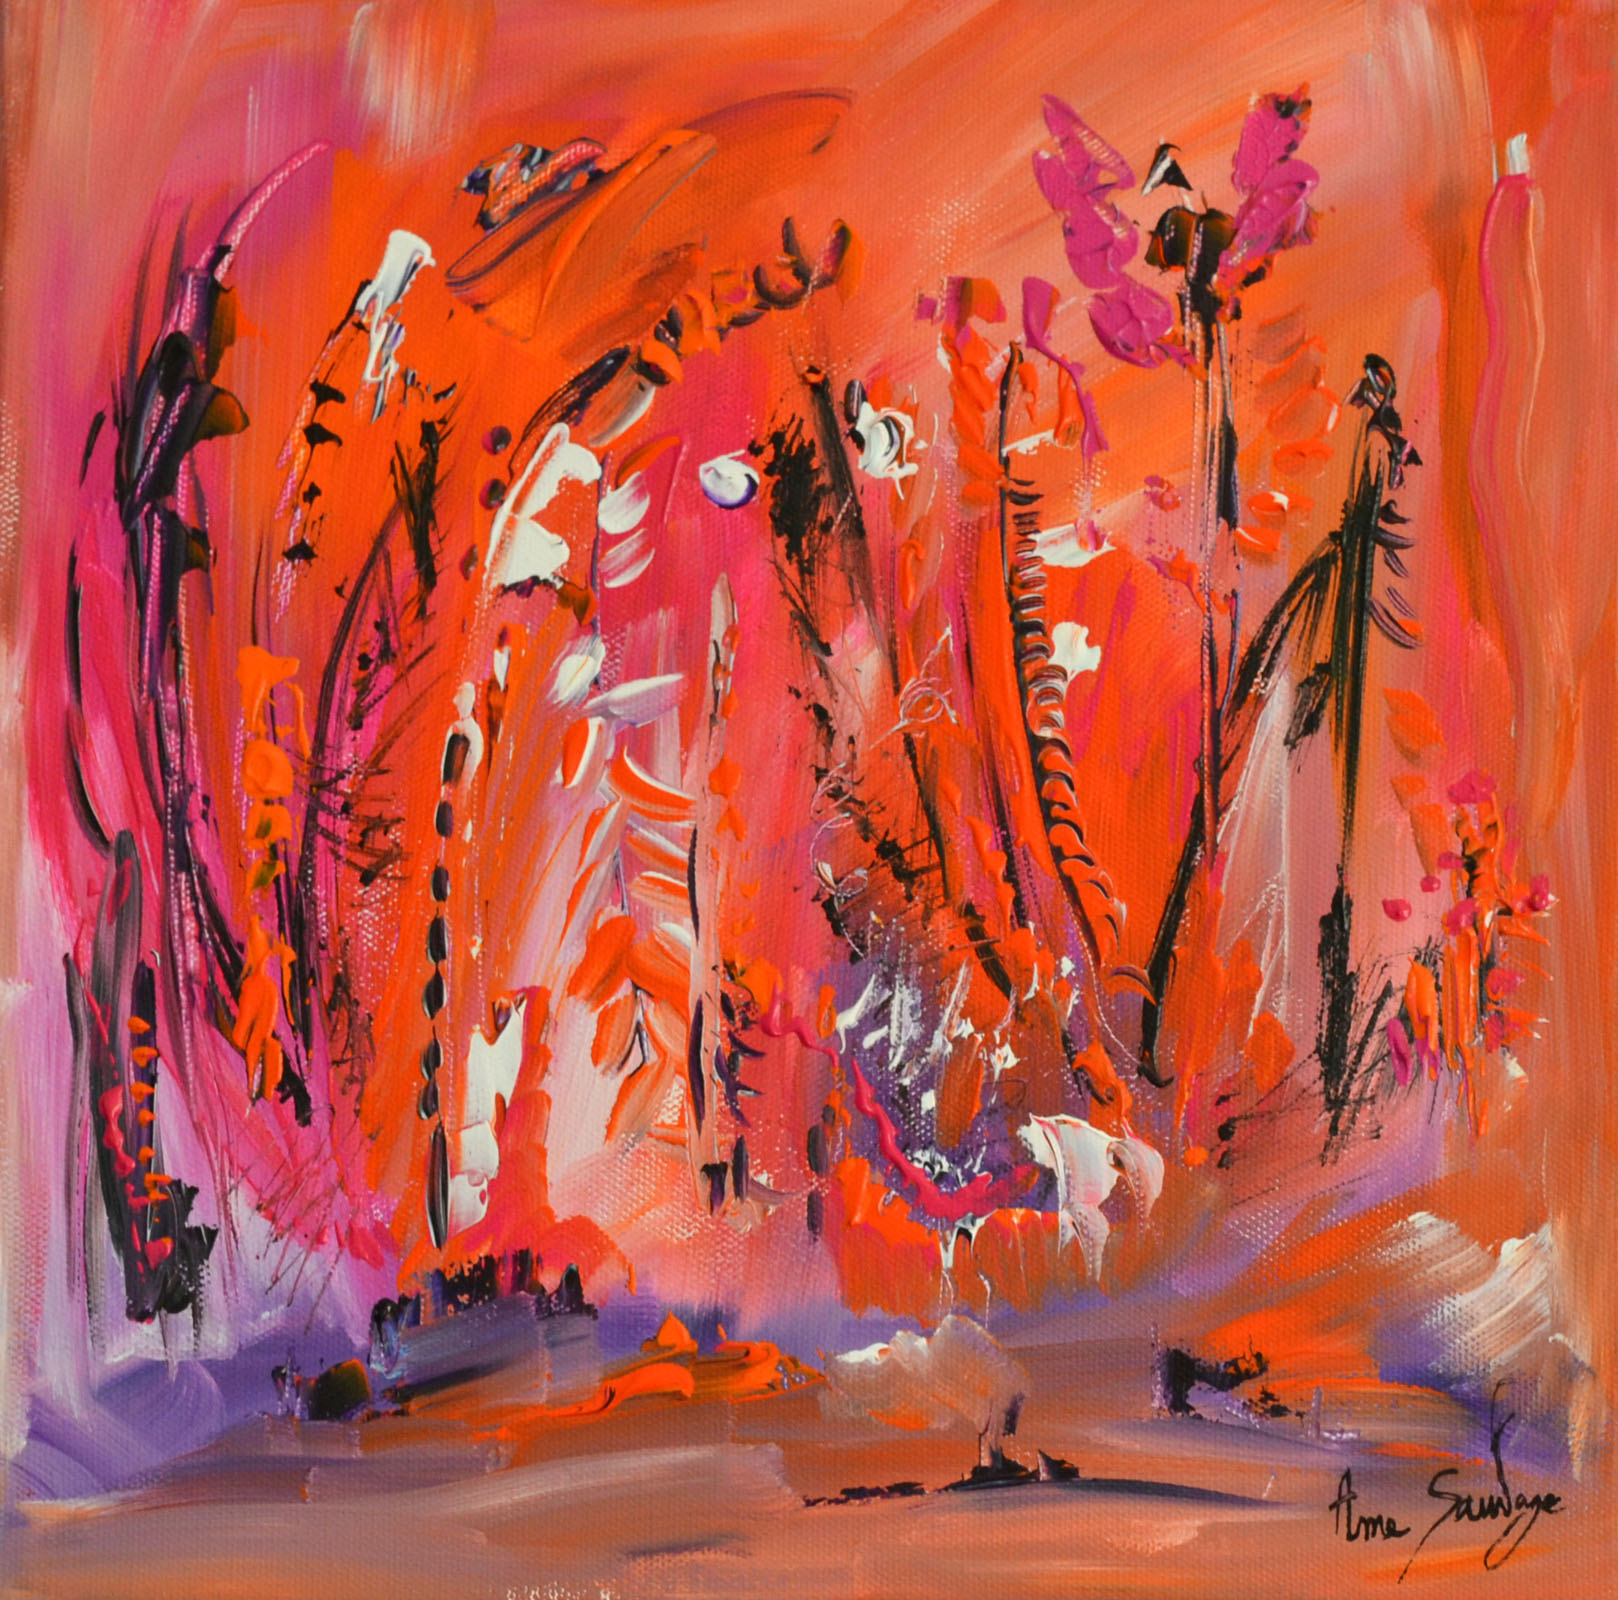 Peinture abstraite contemporaine et moderne orange for Peinture abstraite moderne